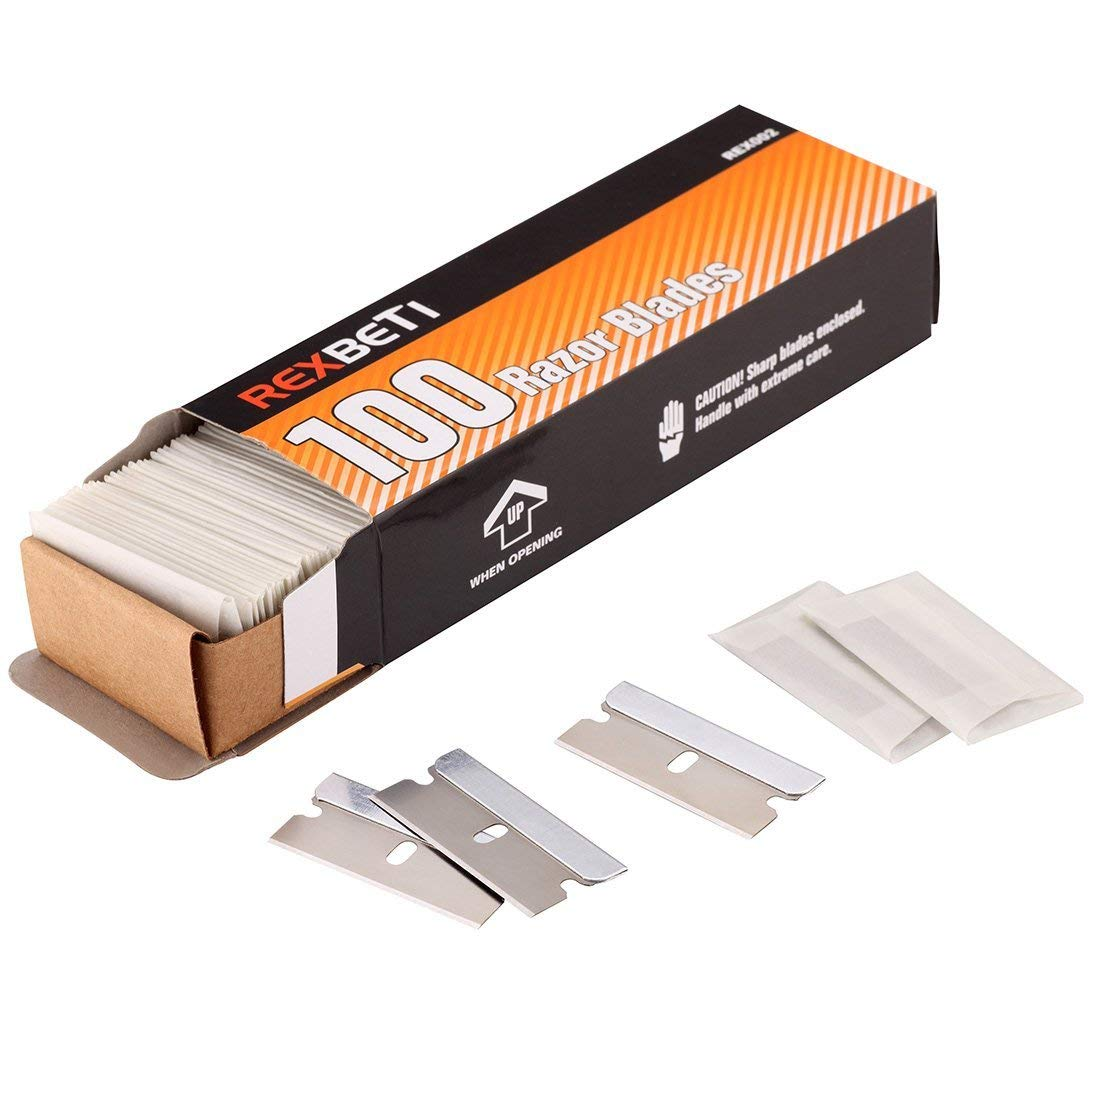 Single Edge Industrial Razor Blades by REXBETI, Box of 100 by REXBETI